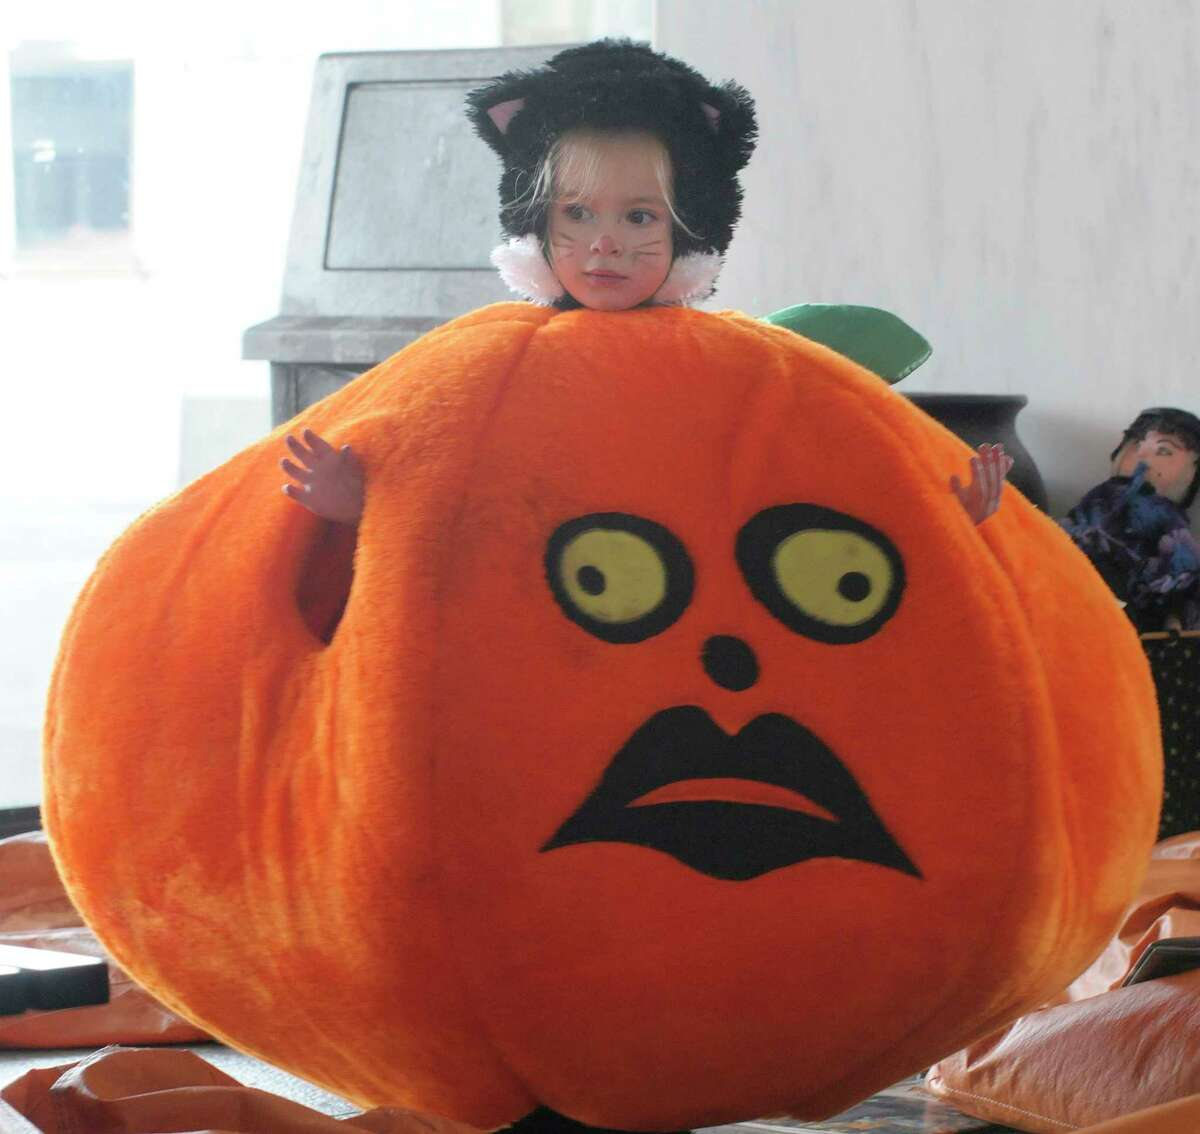 Ashley Grogan, 3 years old, dressed as a cat, tries on a giant pumpkin outfit at the New York State Museum during the museum?s 7th annual Halloween festival for kids in Albany, NY on Sunday, Oct. 24, 2010. The Museum will host another Halloween festival for kids on Saturday Oct. 30th and Sunday Oct. 31st from noon to 4pm each day, with a children's parade taking place at 1pm each day. All proceeds benefit the Museum?s after-school programs. (Paul Buckowski / Times Union)